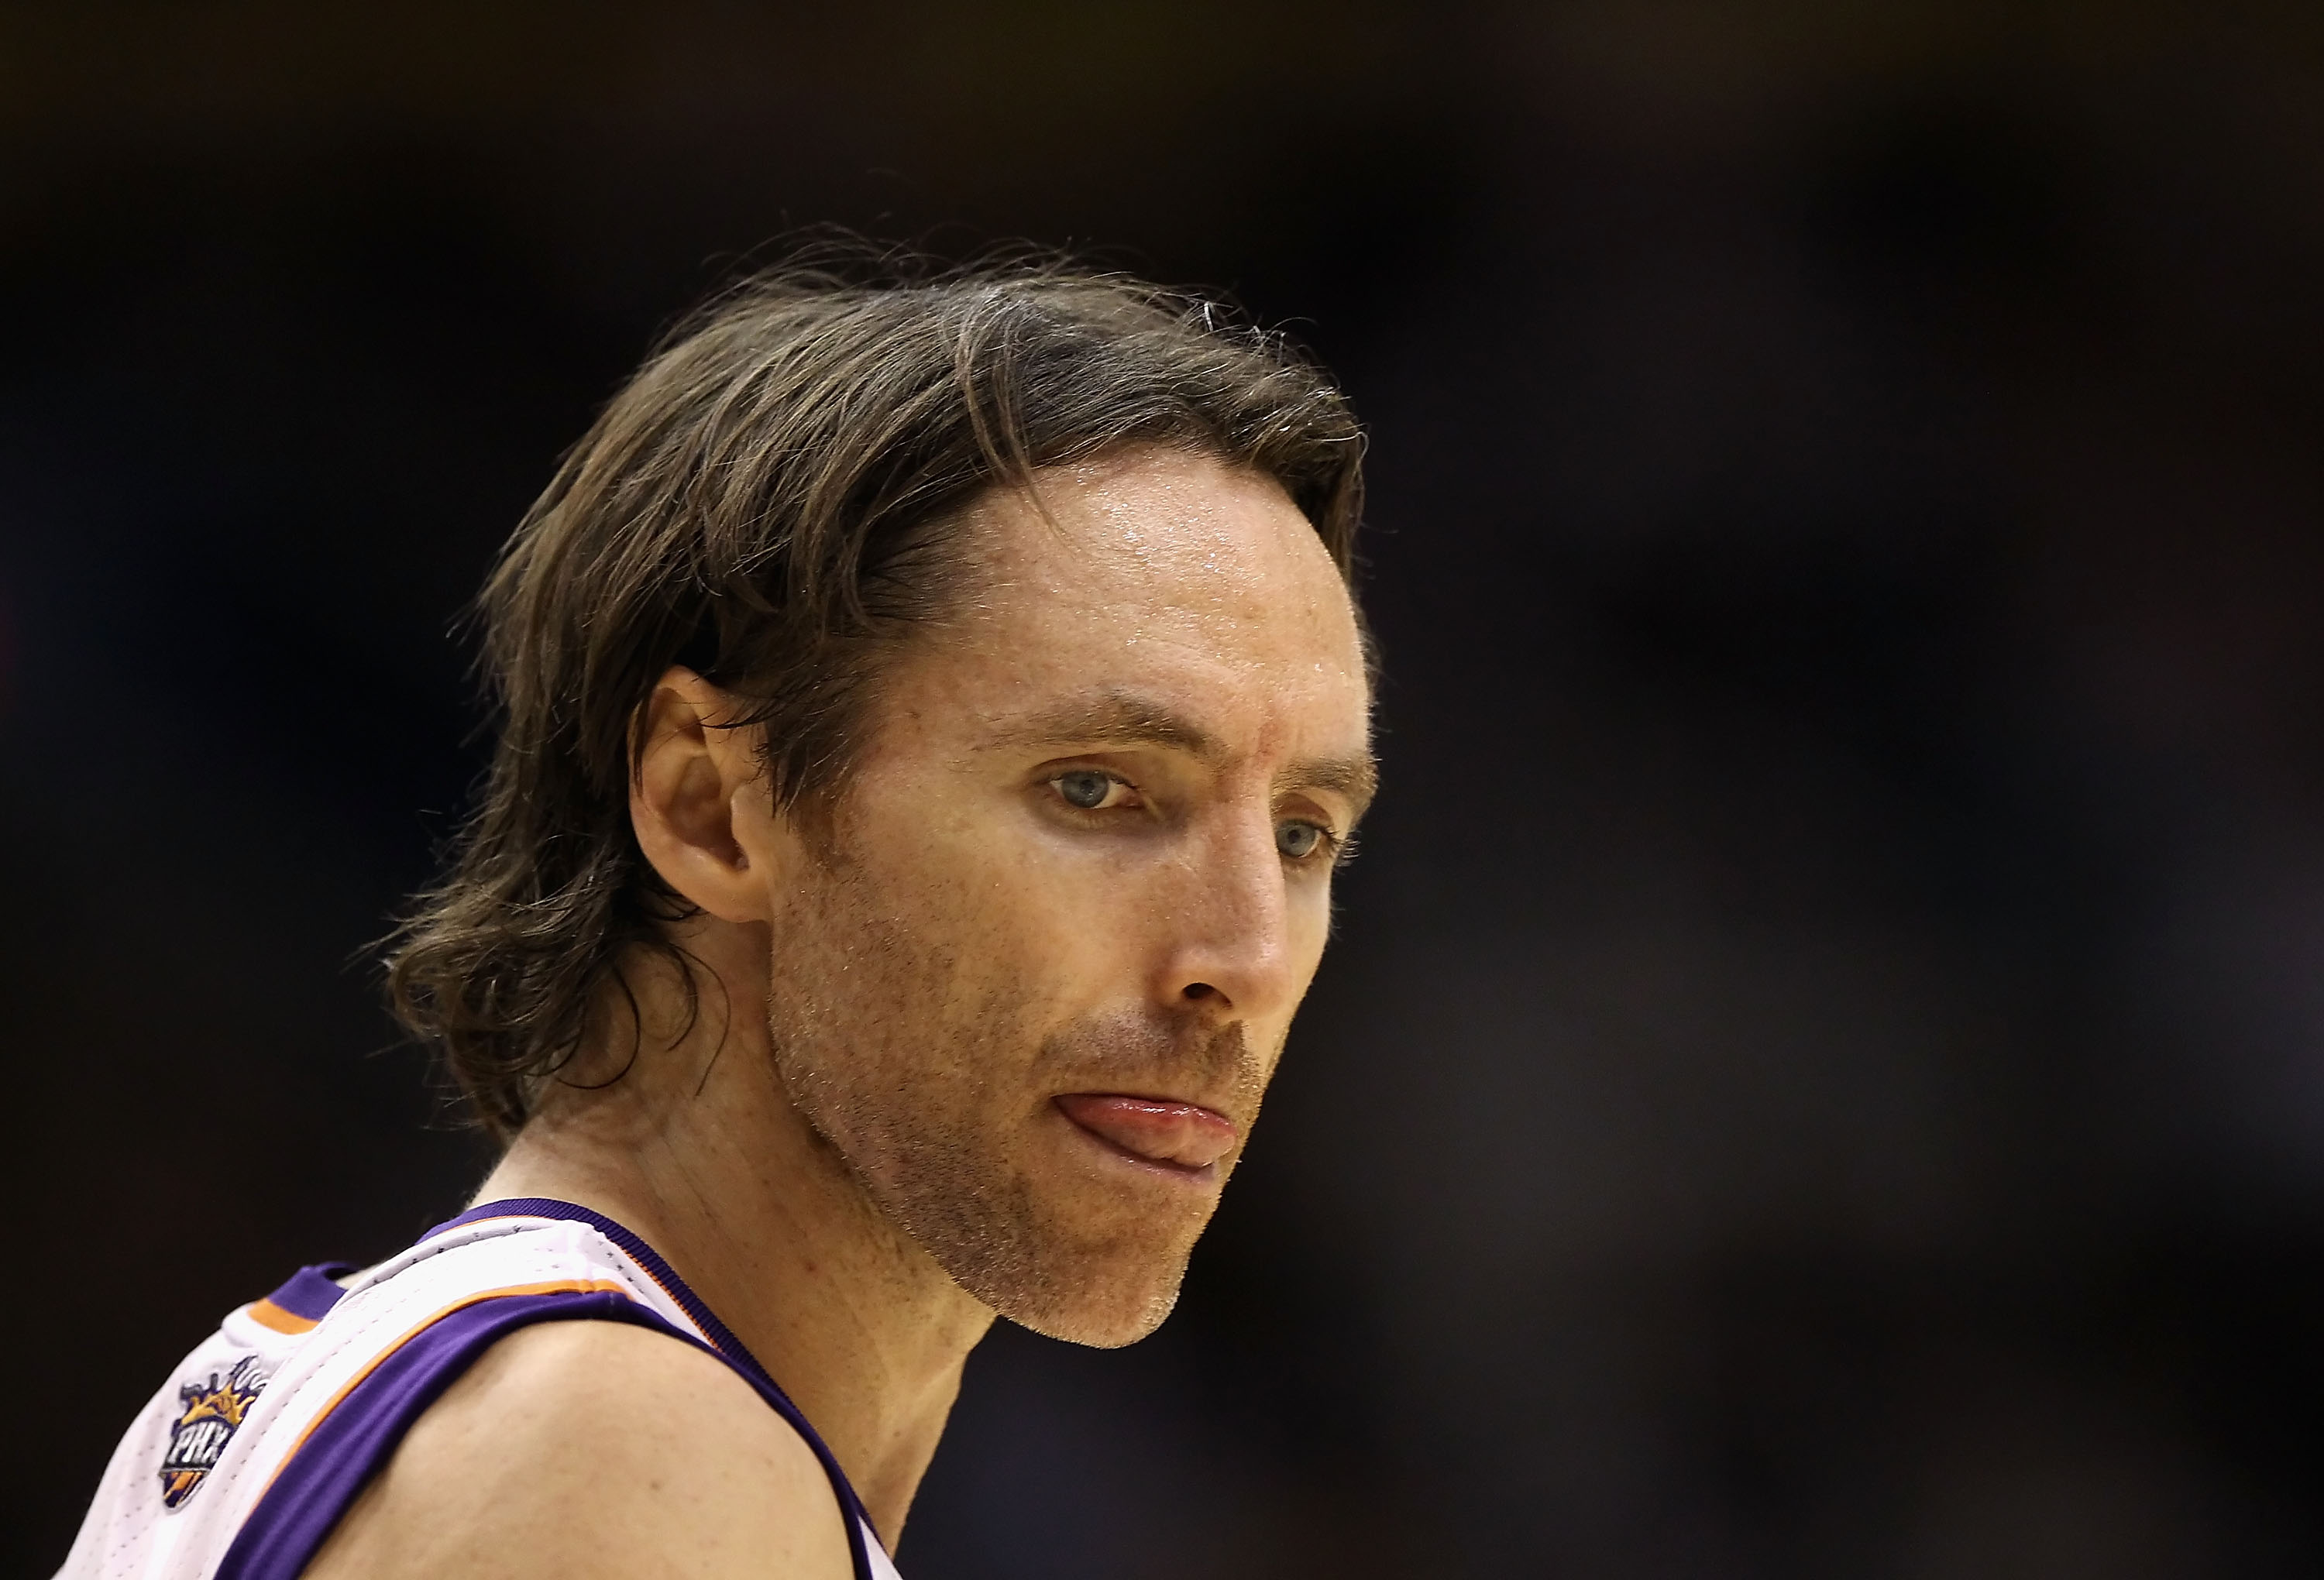 PHOENIX - DECEMBER 10:  Steve Nash #13 of the Phoenix Suns reacts during the NBA game against the Portland Trail Blazers at US Airways Center on December 10, 2010 in Phoenix, Arizona.  The Trail Blazers defeated the Suns 101-94. NOTE TO USER: User express